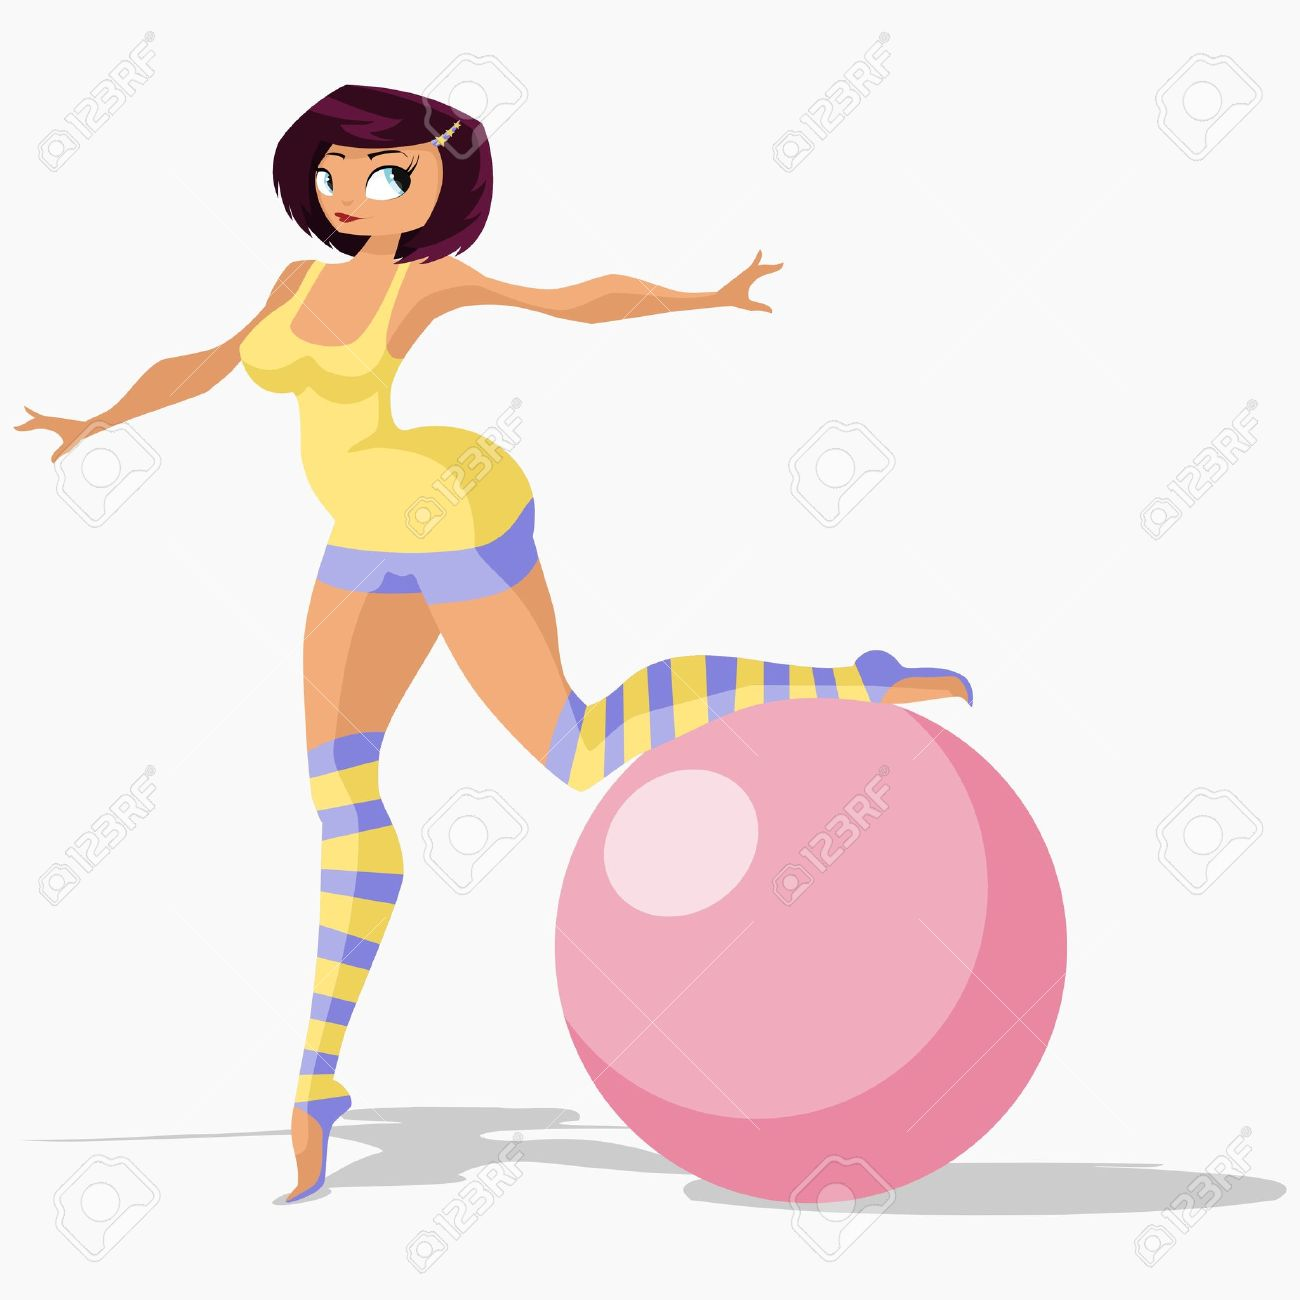 Vector illustration:girl in gym suit stands on one leg and leans on gymnastic ball. Stock Vector - 6326694